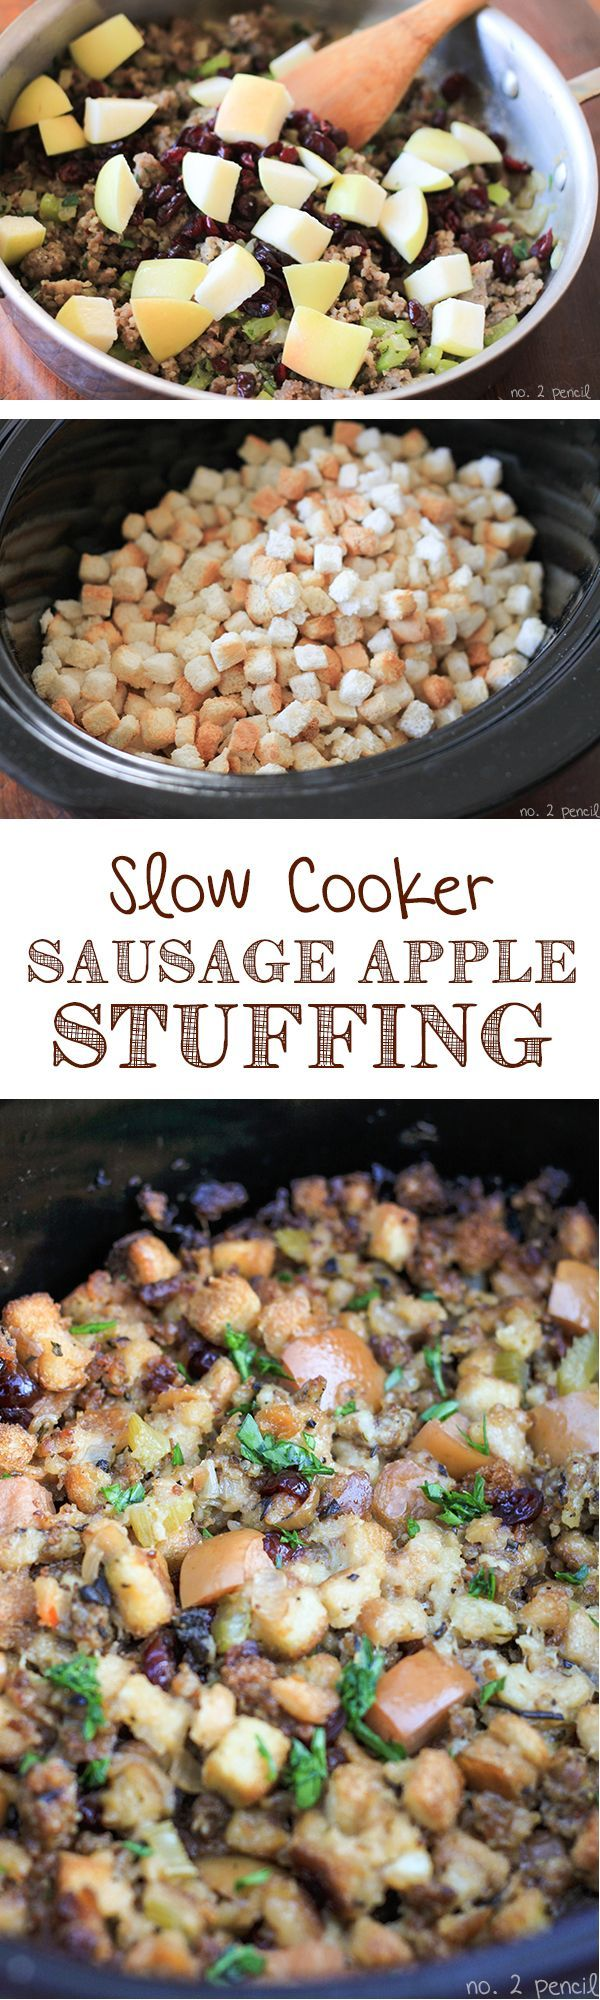 If you are looking for a new idea for a stuffing recipe for Thanksgiving this year, you should definitely give this a whirl!